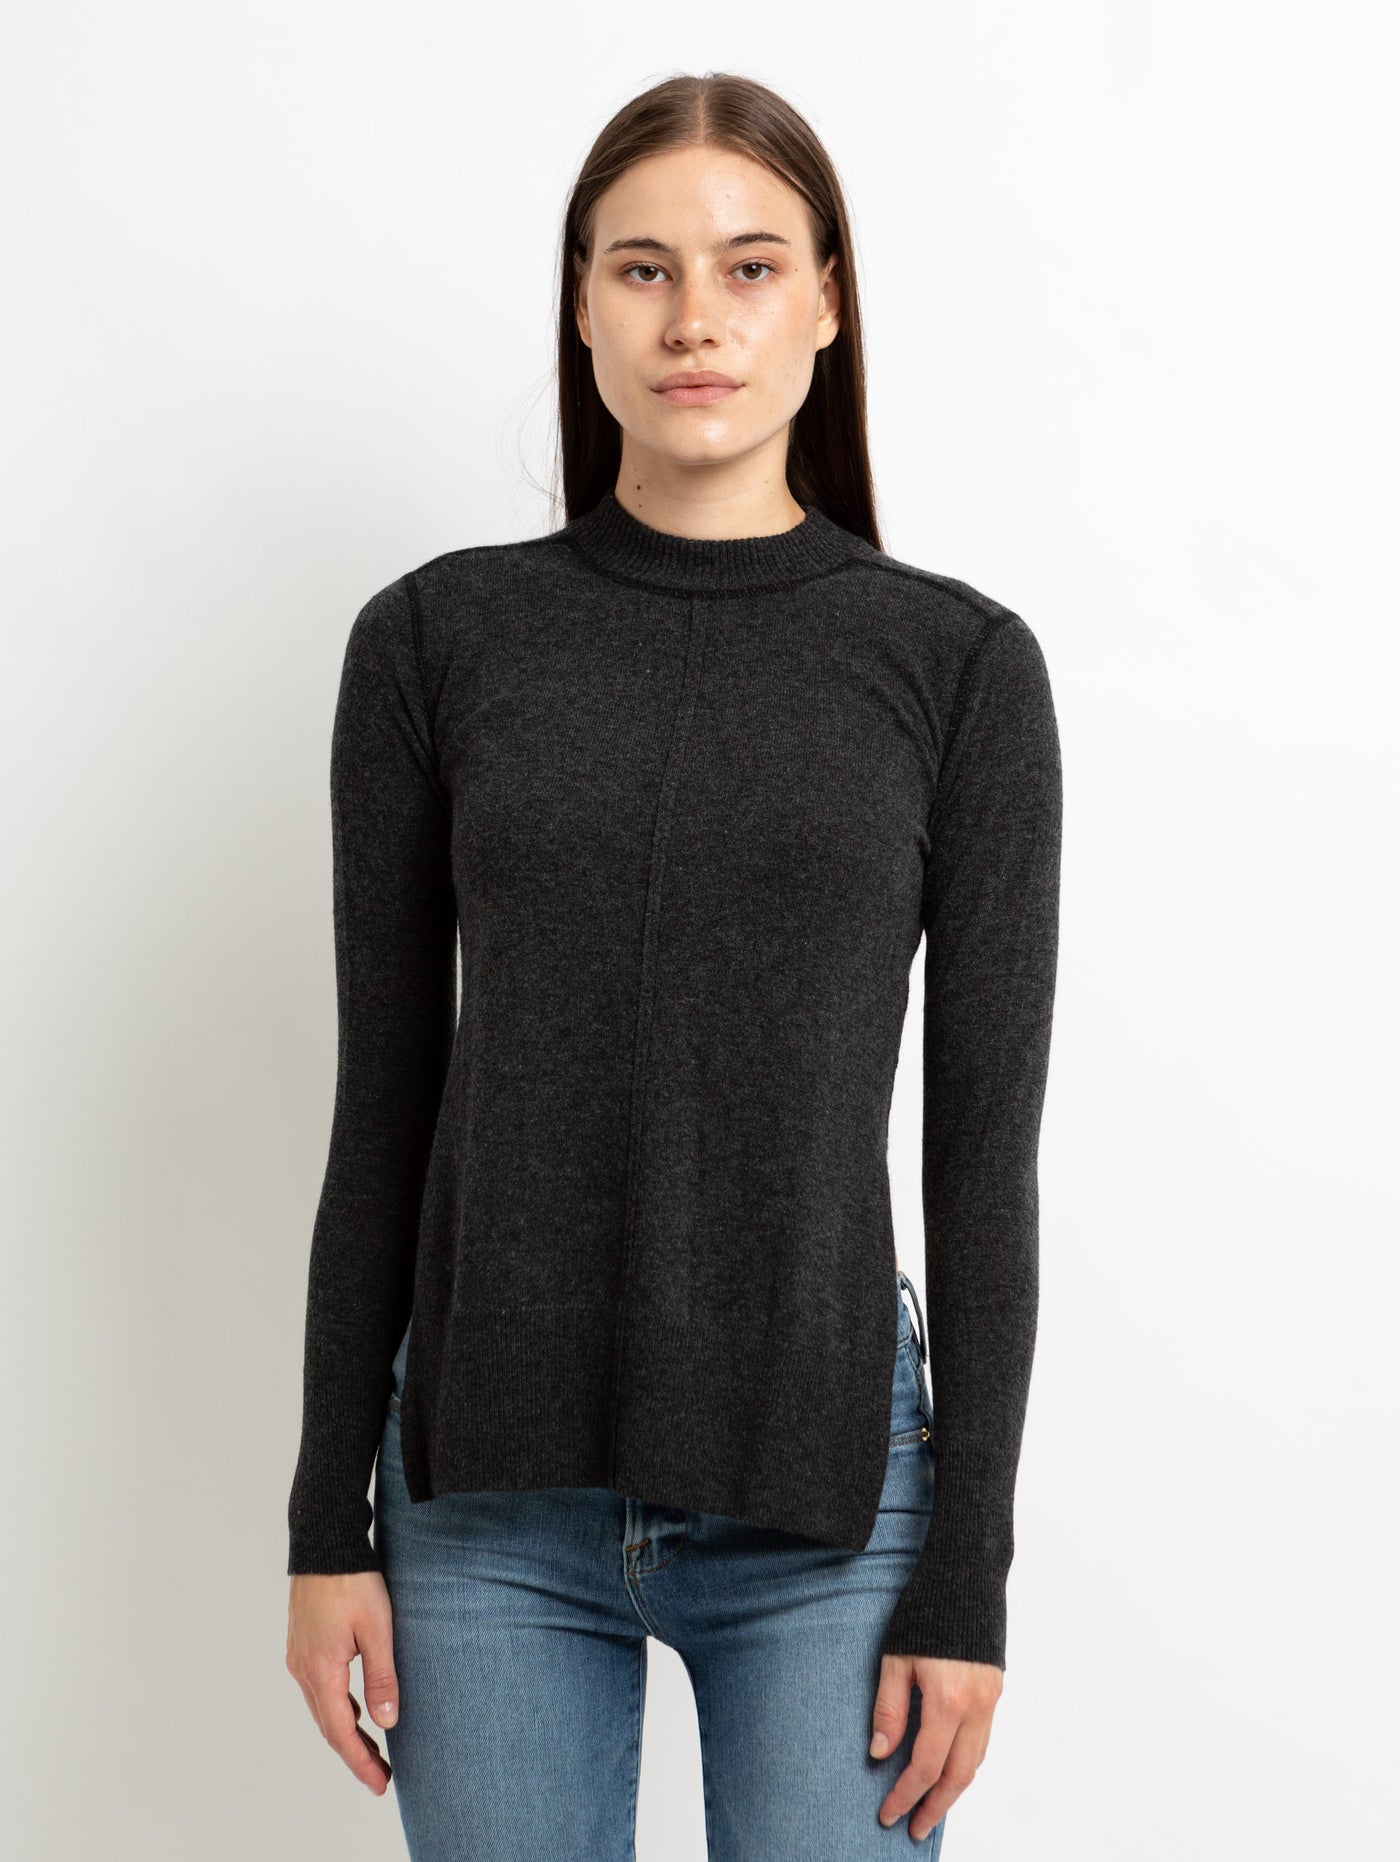 Coverstitch Crew Sweater with High Slits-AUTUMN CASHMERE-Over the Rainbow